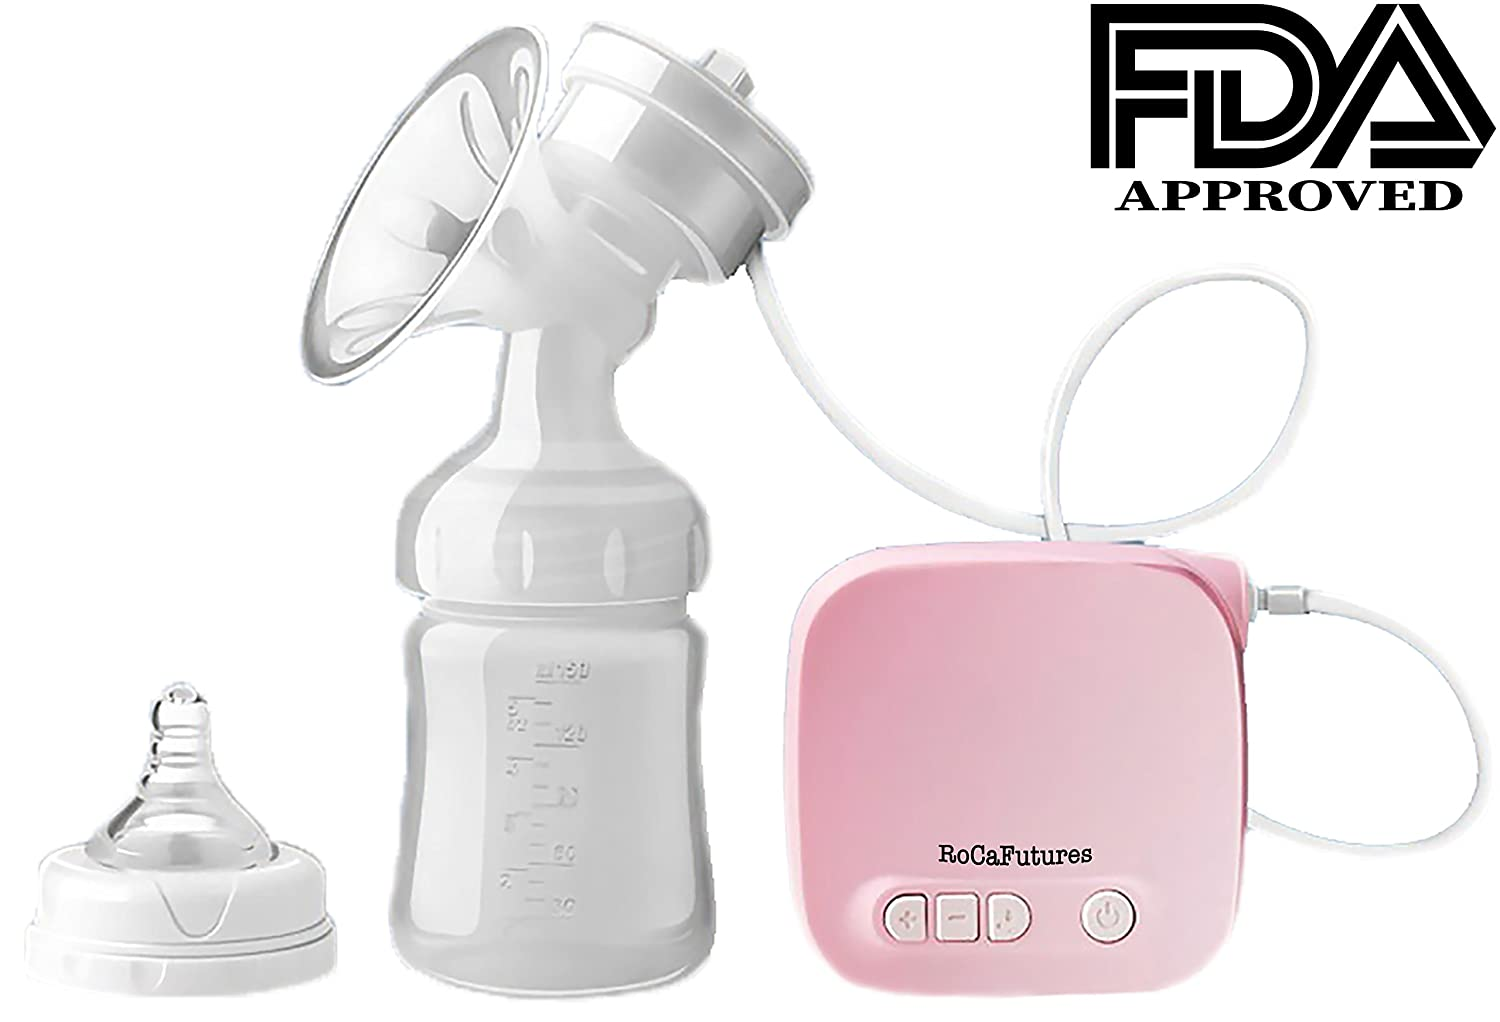 Portable Electric Breast Pump - Compact, Easy to Operate Single Pump for travel. Multiple Settings for Comfort & Effective Milk Flow. USB Powered, Ultra-Light, Ideal for Travel Guangzhou Dadious Baby Co. Ltd